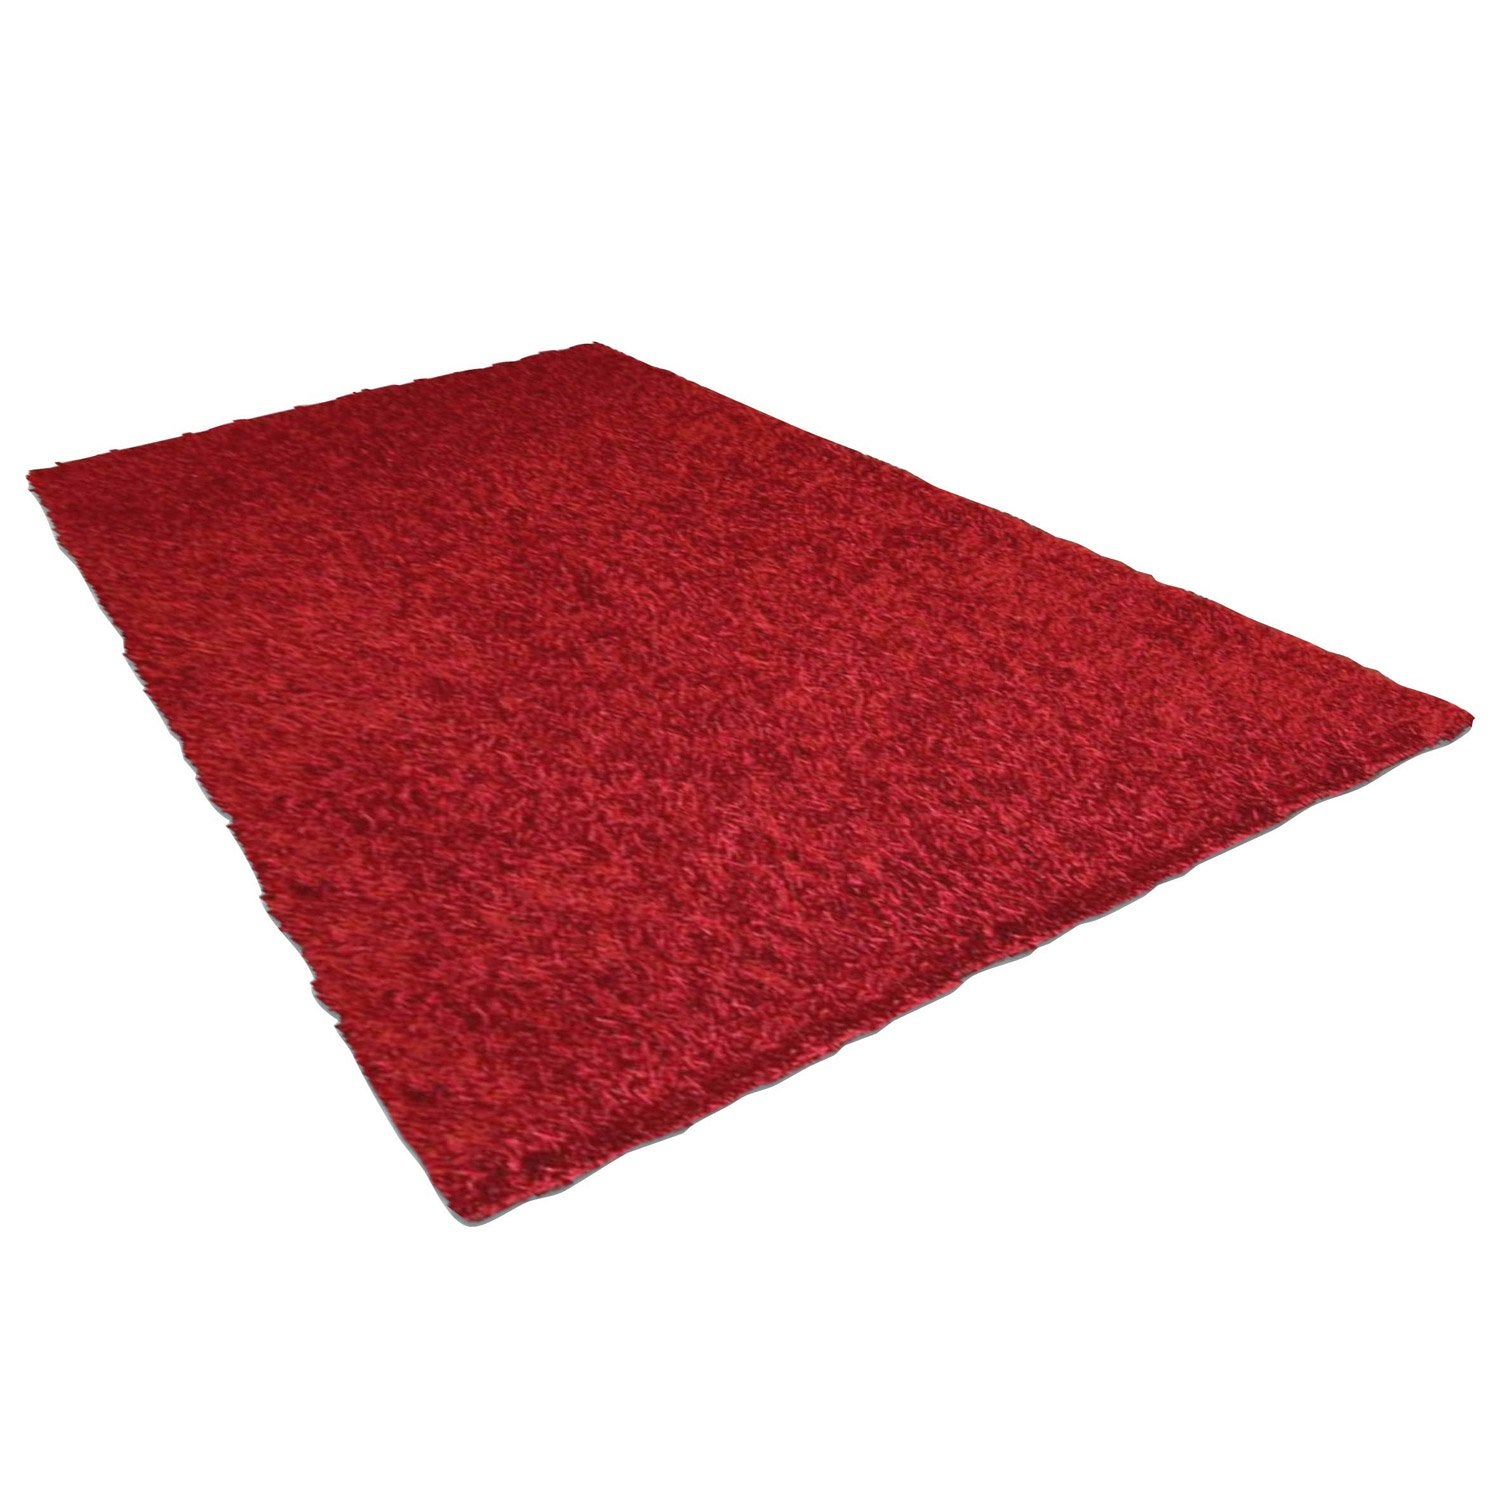 tapis ikea rouge design tapis salon rouge ikea metz tapis rouge senegal with tapis ikea rouge. Black Bedroom Furniture Sets. Home Design Ideas